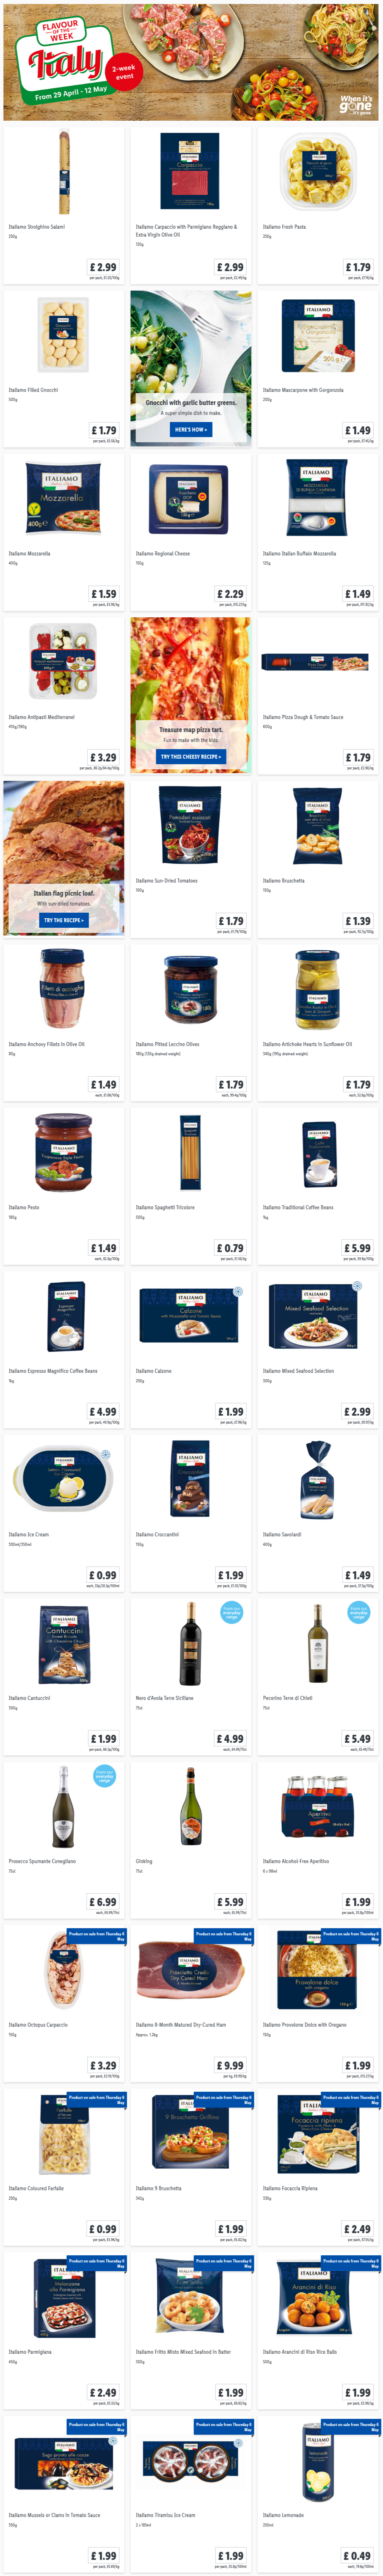 LIDL Offers this Thursday Flavour of The Week Italian From 29th April 2021